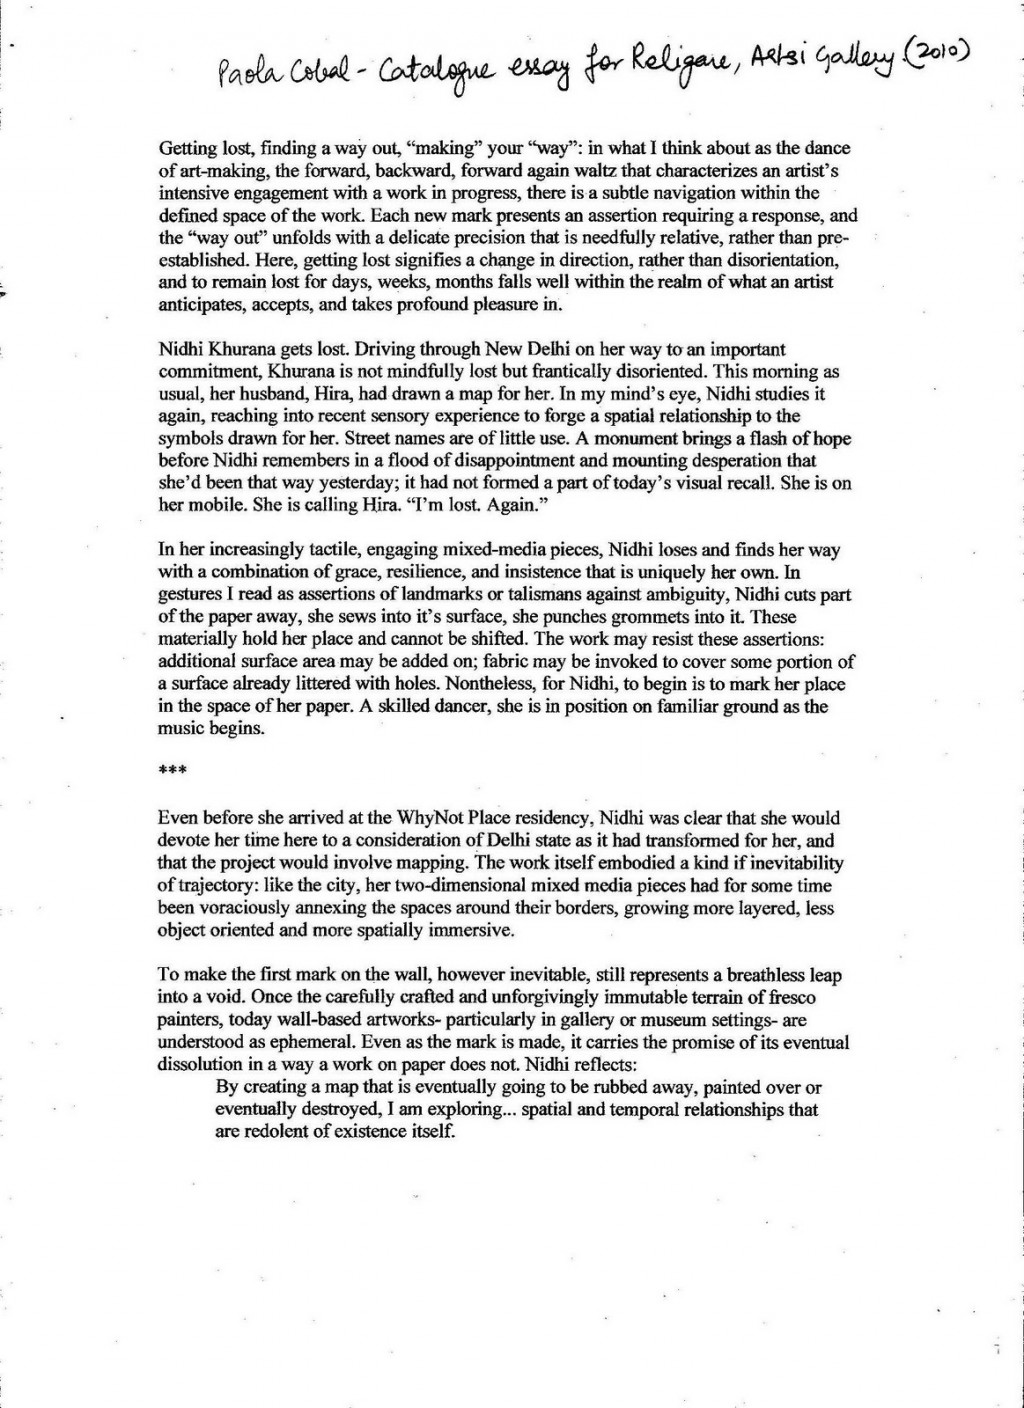 002 Essay Example Paolaessay Beautiful Heros Hero's Journey Titles Heroes Robert Cormier Questions Hero Outline Large